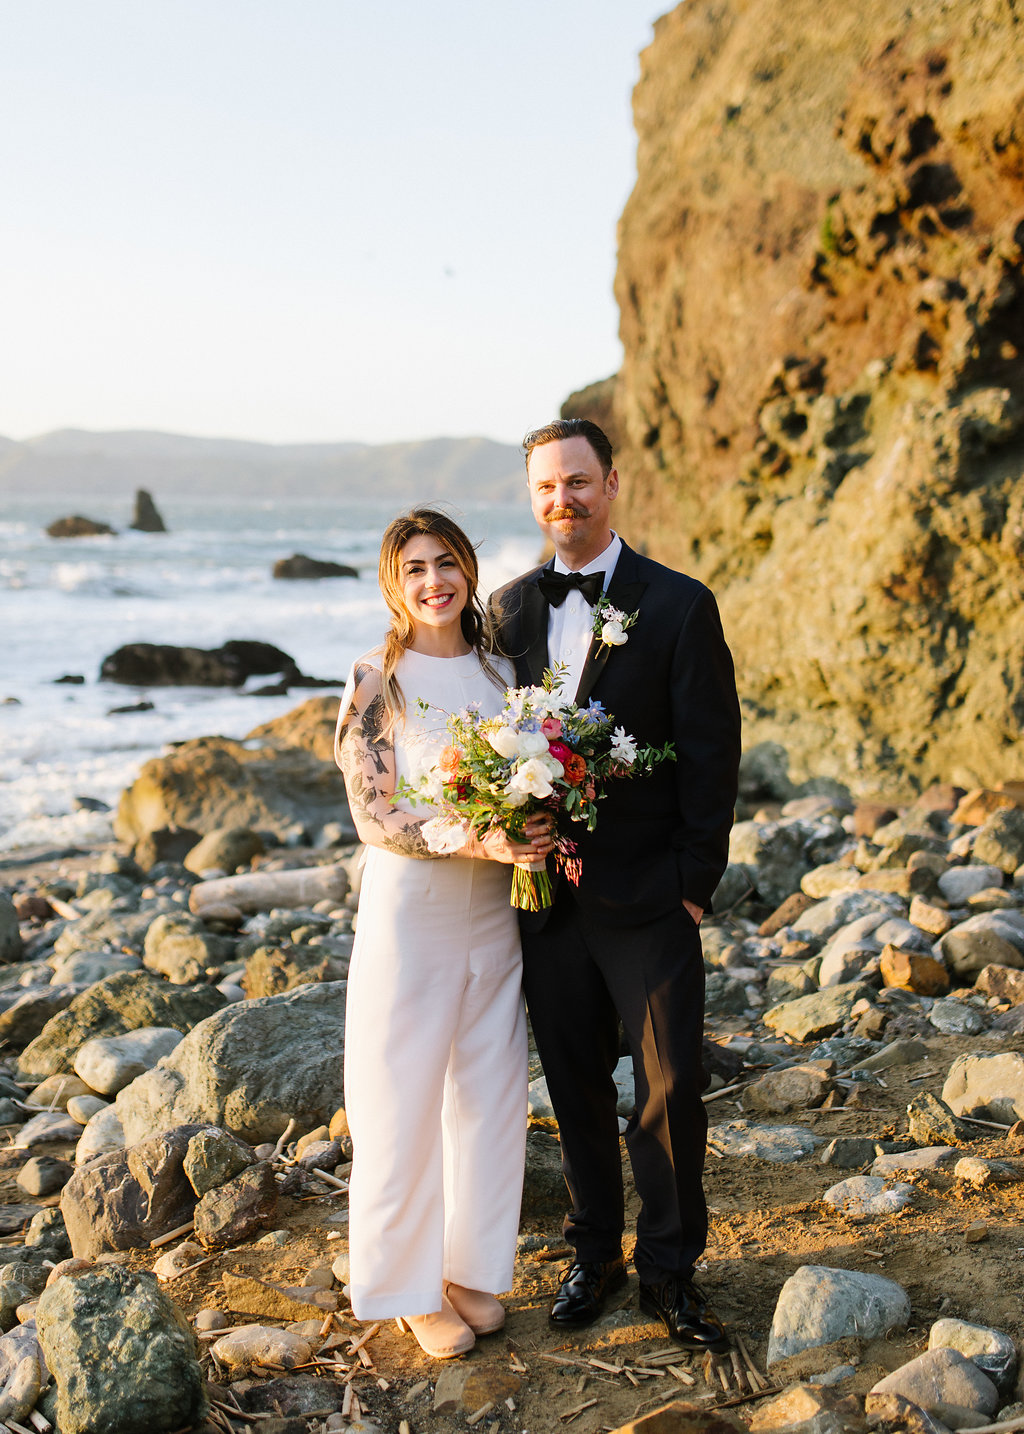 rocky beach elopements - photo by Chelsea Dier Photography http://ruffledblog.com/modern-san-francisco-winery-elopement